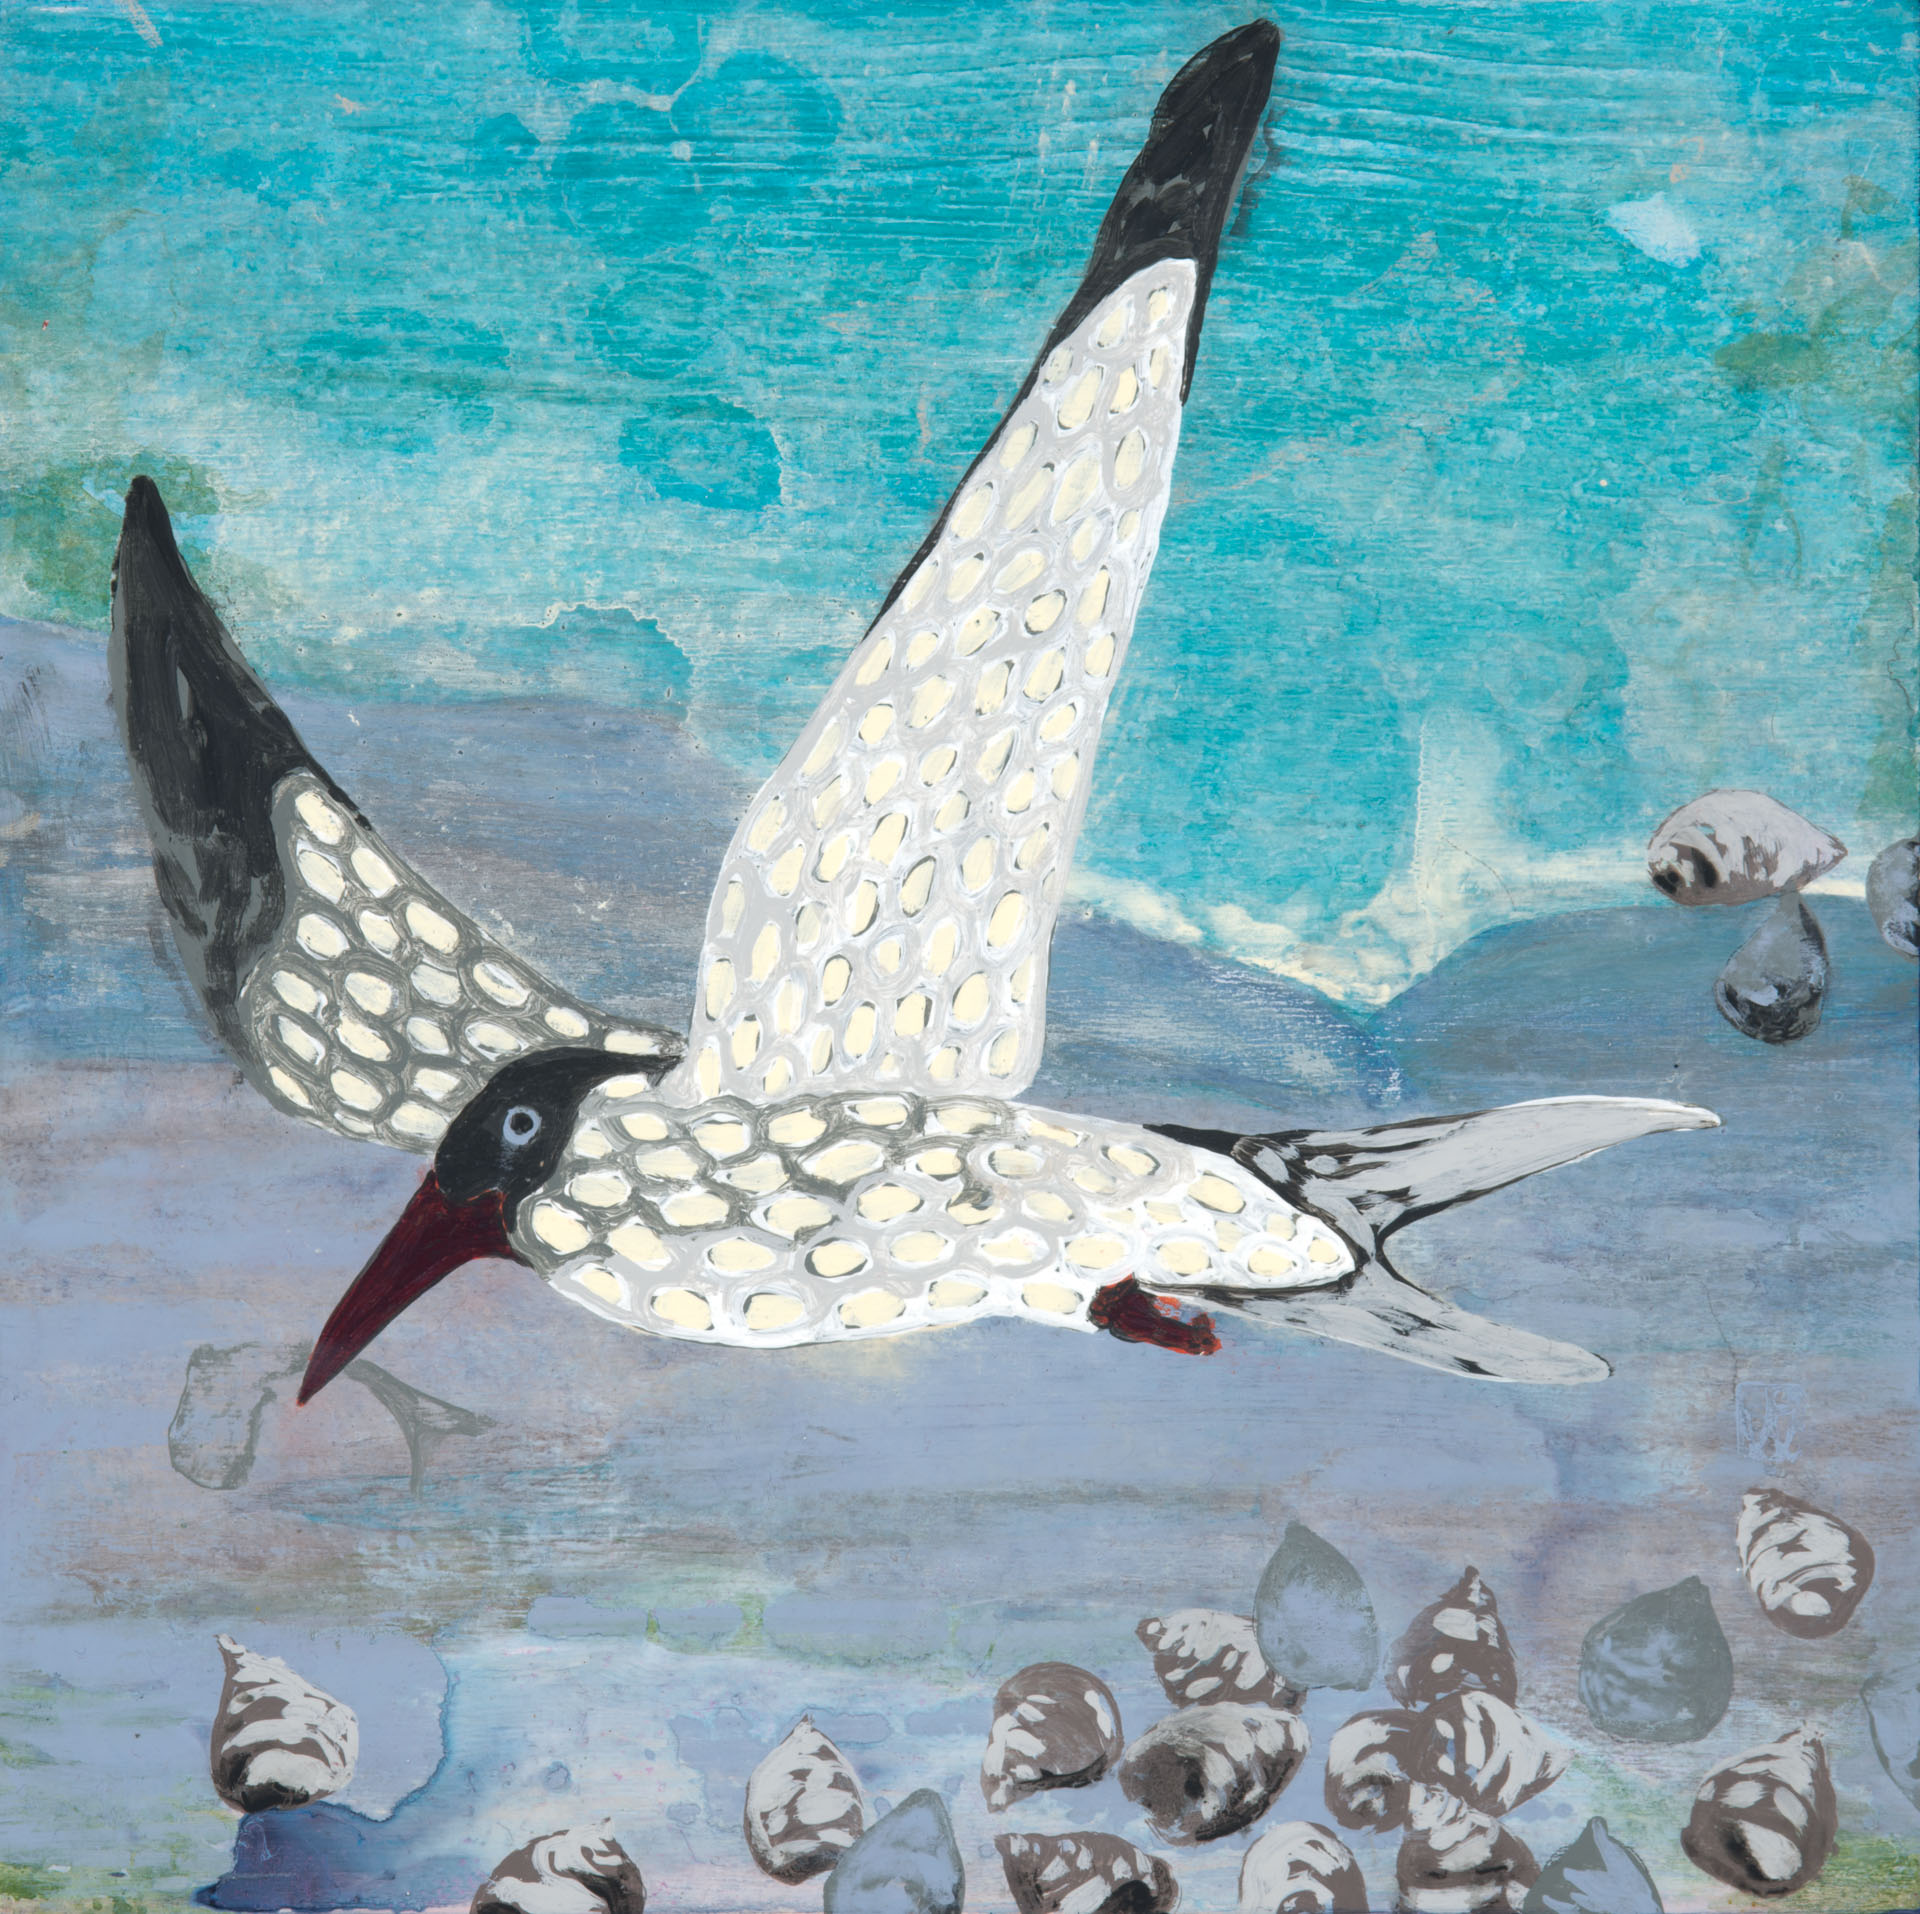 Gone Fishing (Gull with Periwinkles)